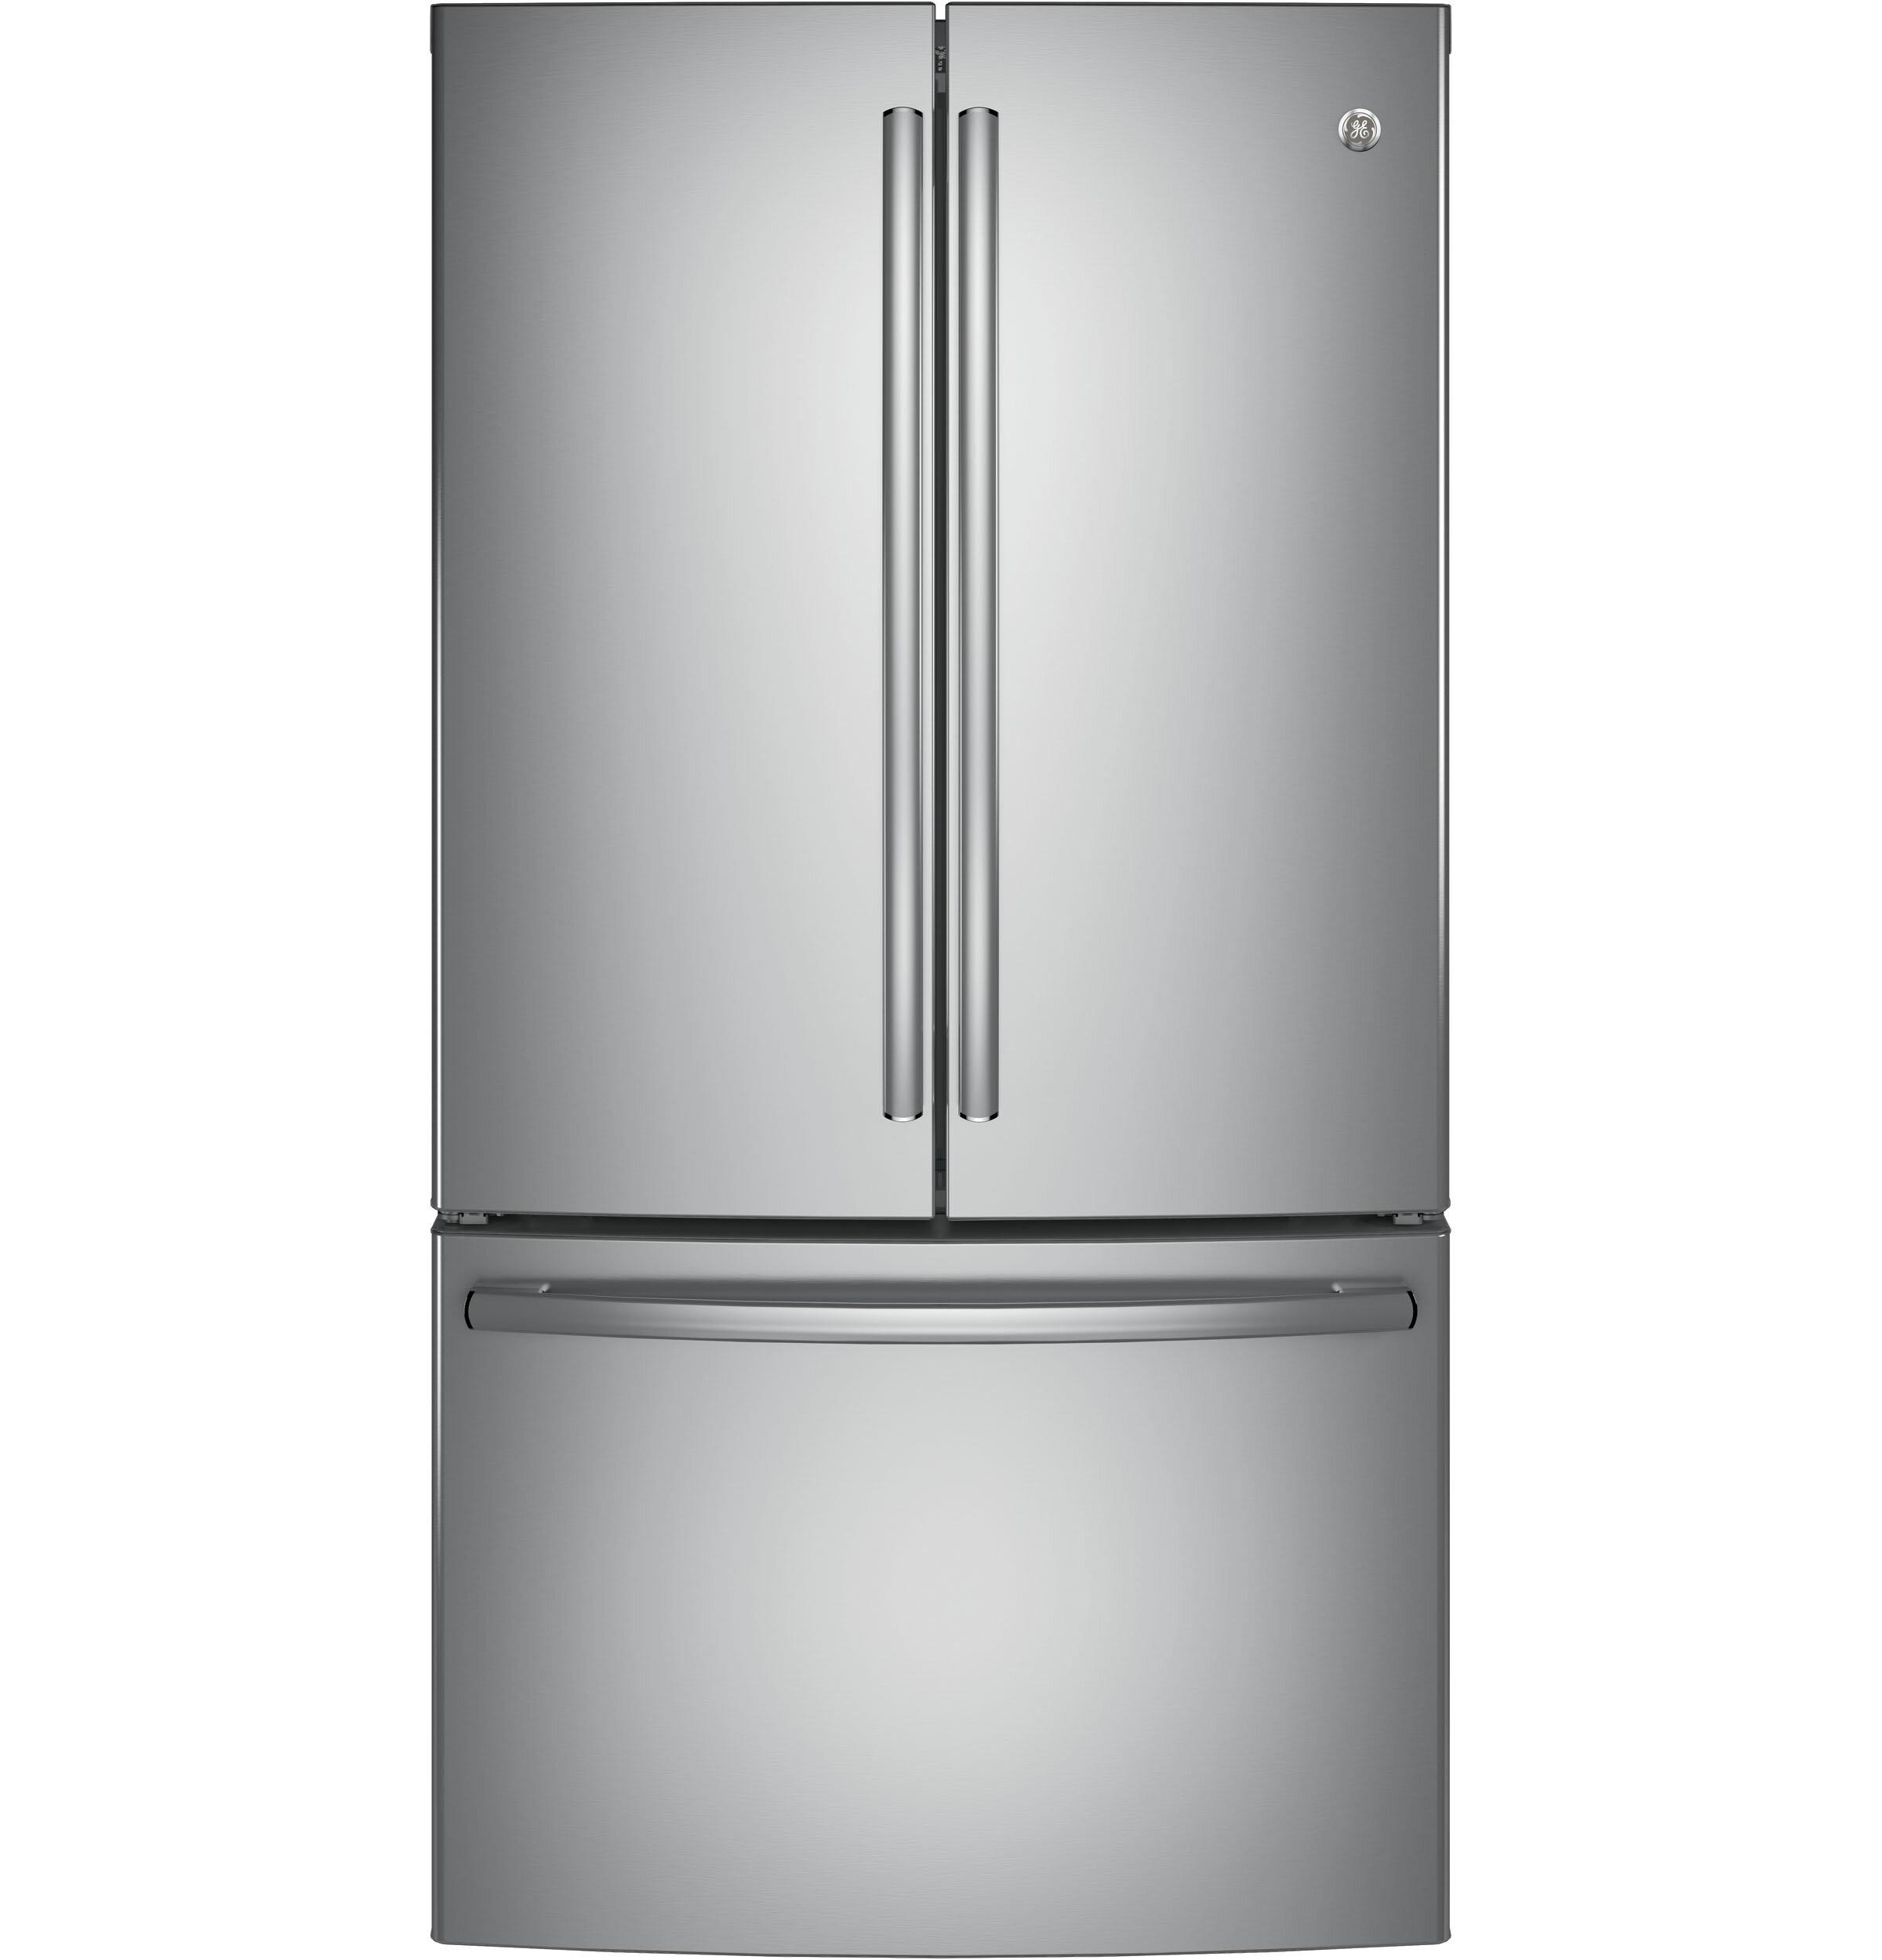 Energy Star French Door Refrigerator & Reviews - Wayfair